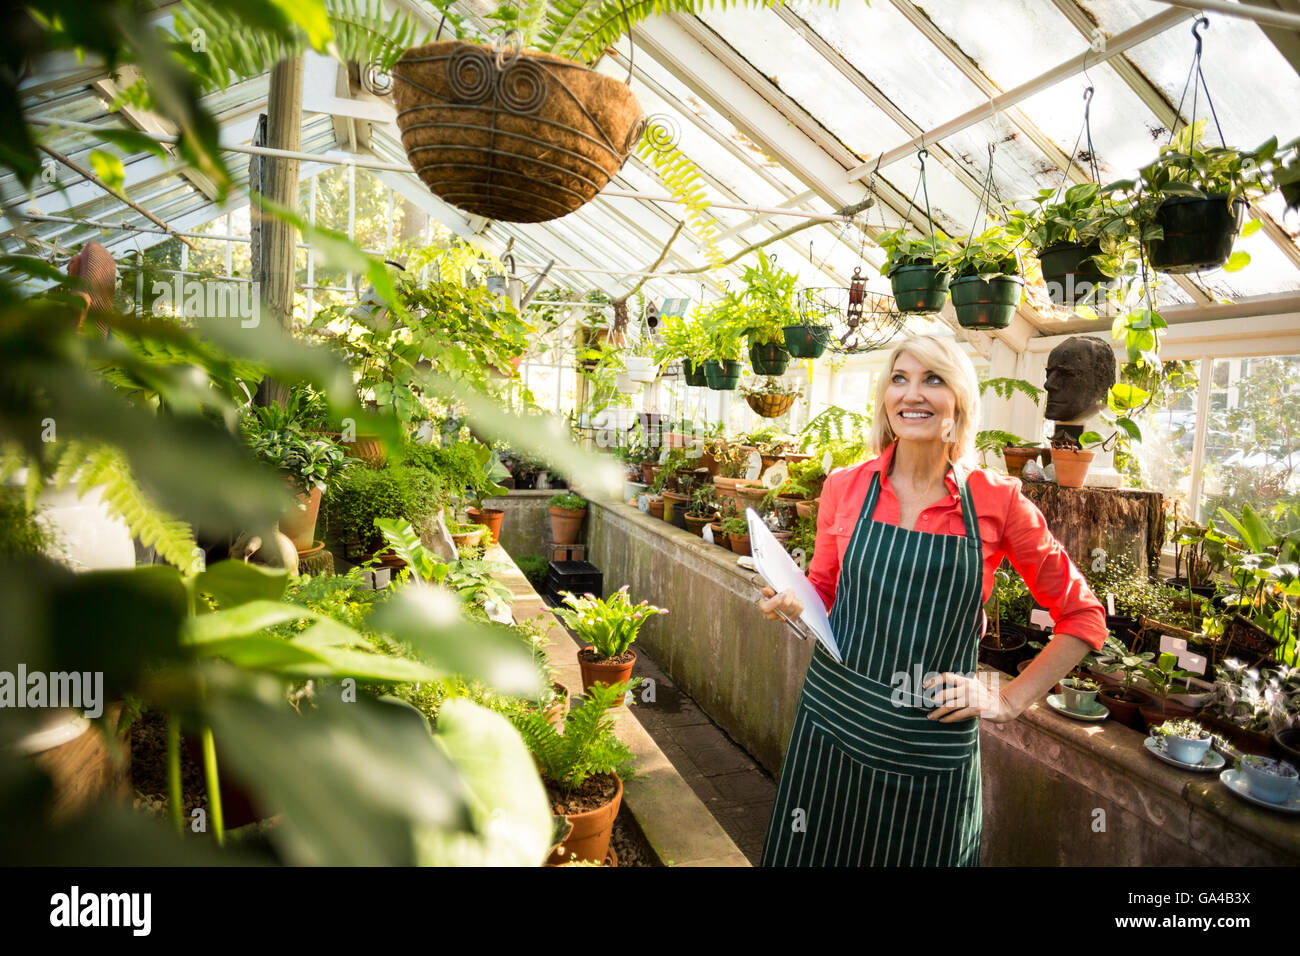 Woman looking at plants hanging in greenhouse - Stock Image